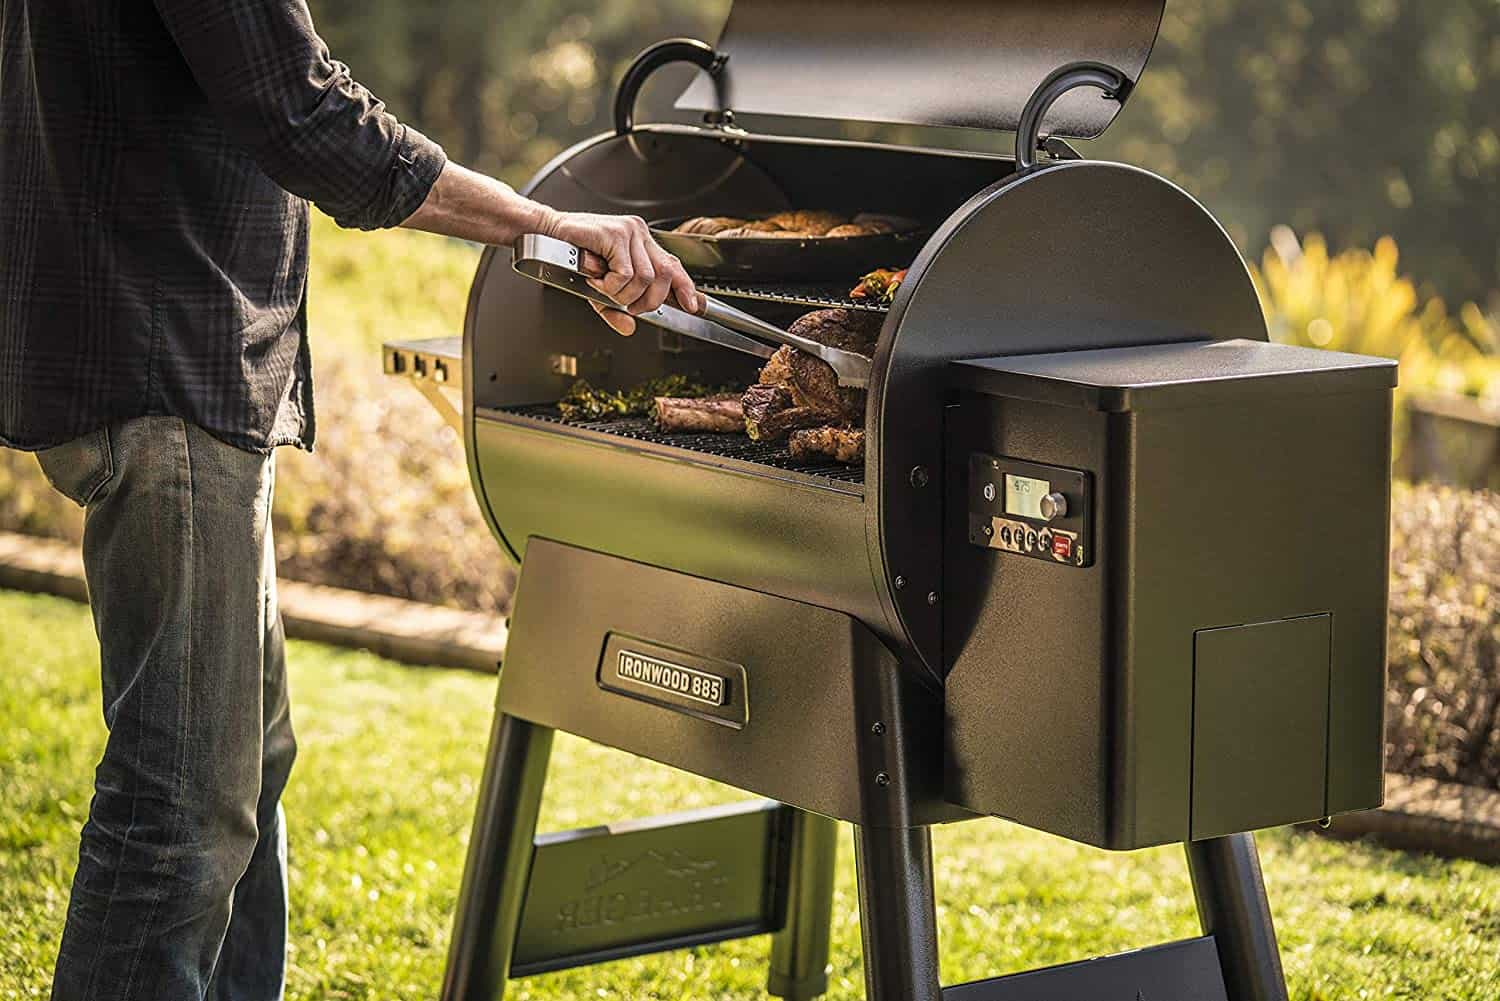 Most Innovative Grill: Traeger Ironwood 885